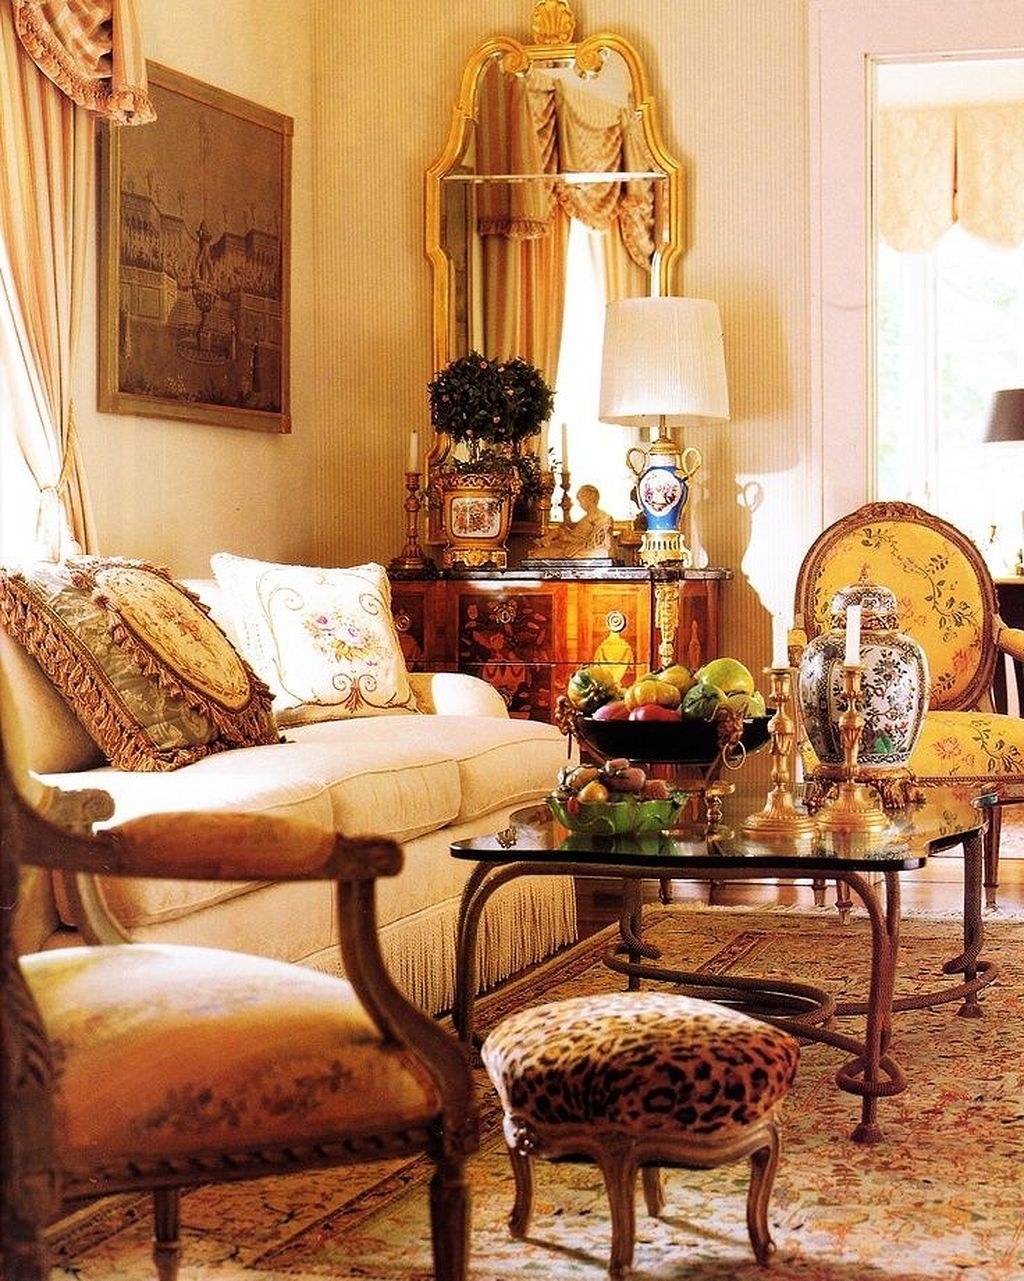 Irresistible Cozy Country Living Room Decor Ideas On Extraordinary Stunning 30 Cozy French Decor Living Room Ideas S On Cozy Country Living Room Decor Ideas